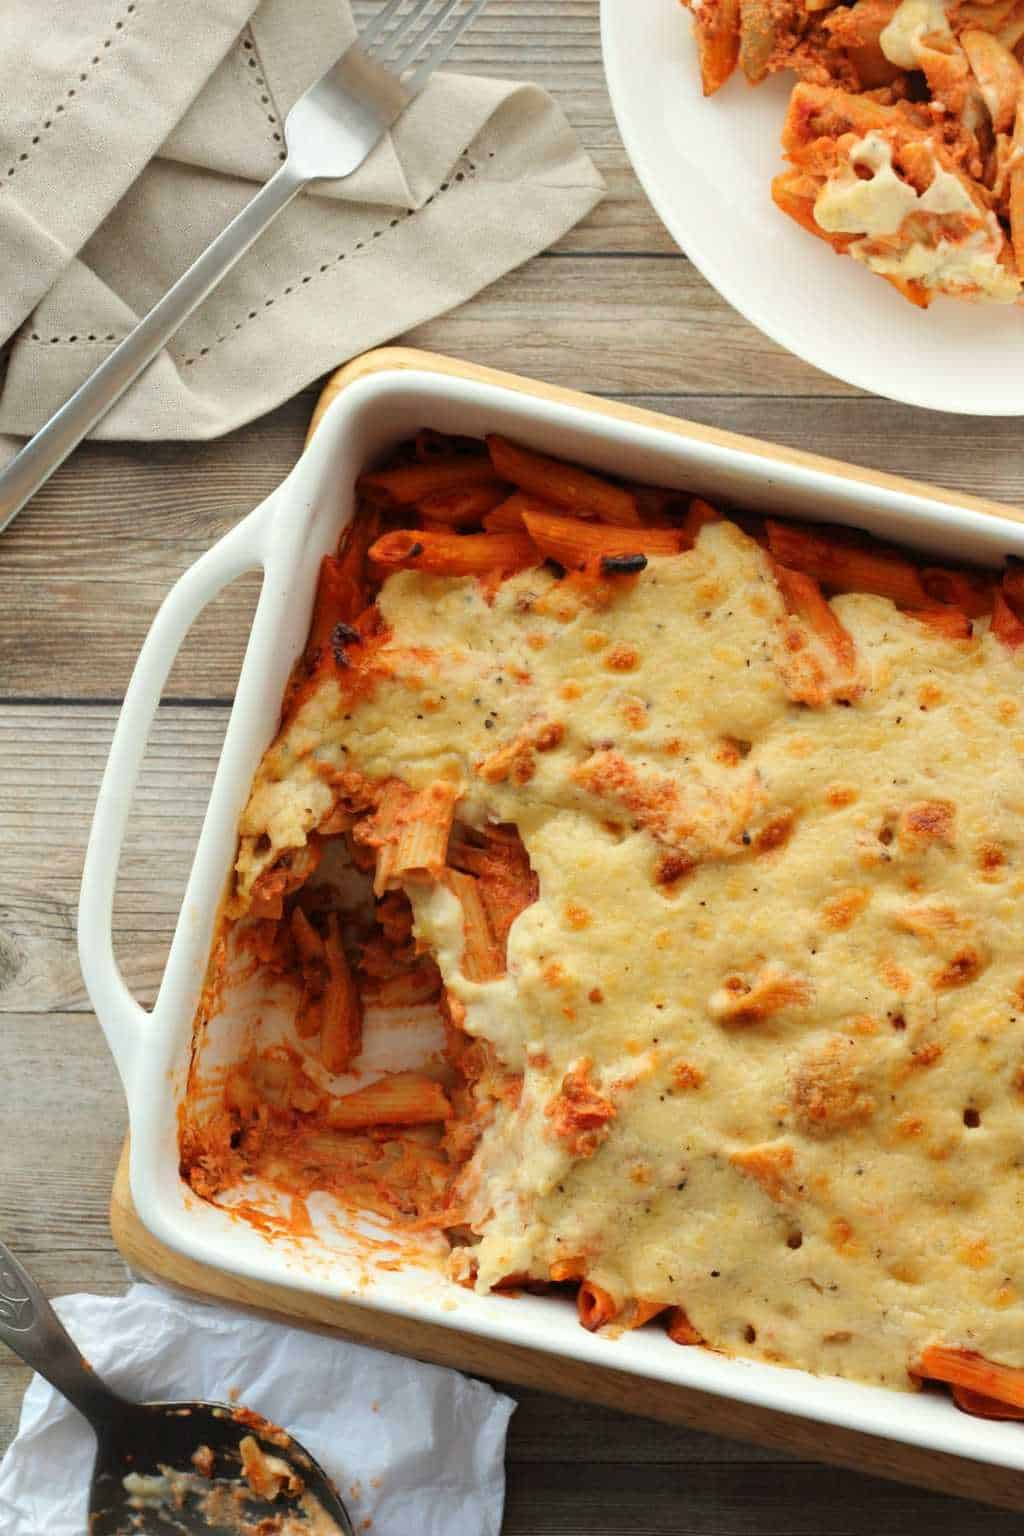 Vegan Pasta Bake in a white oven dish with a side plate.